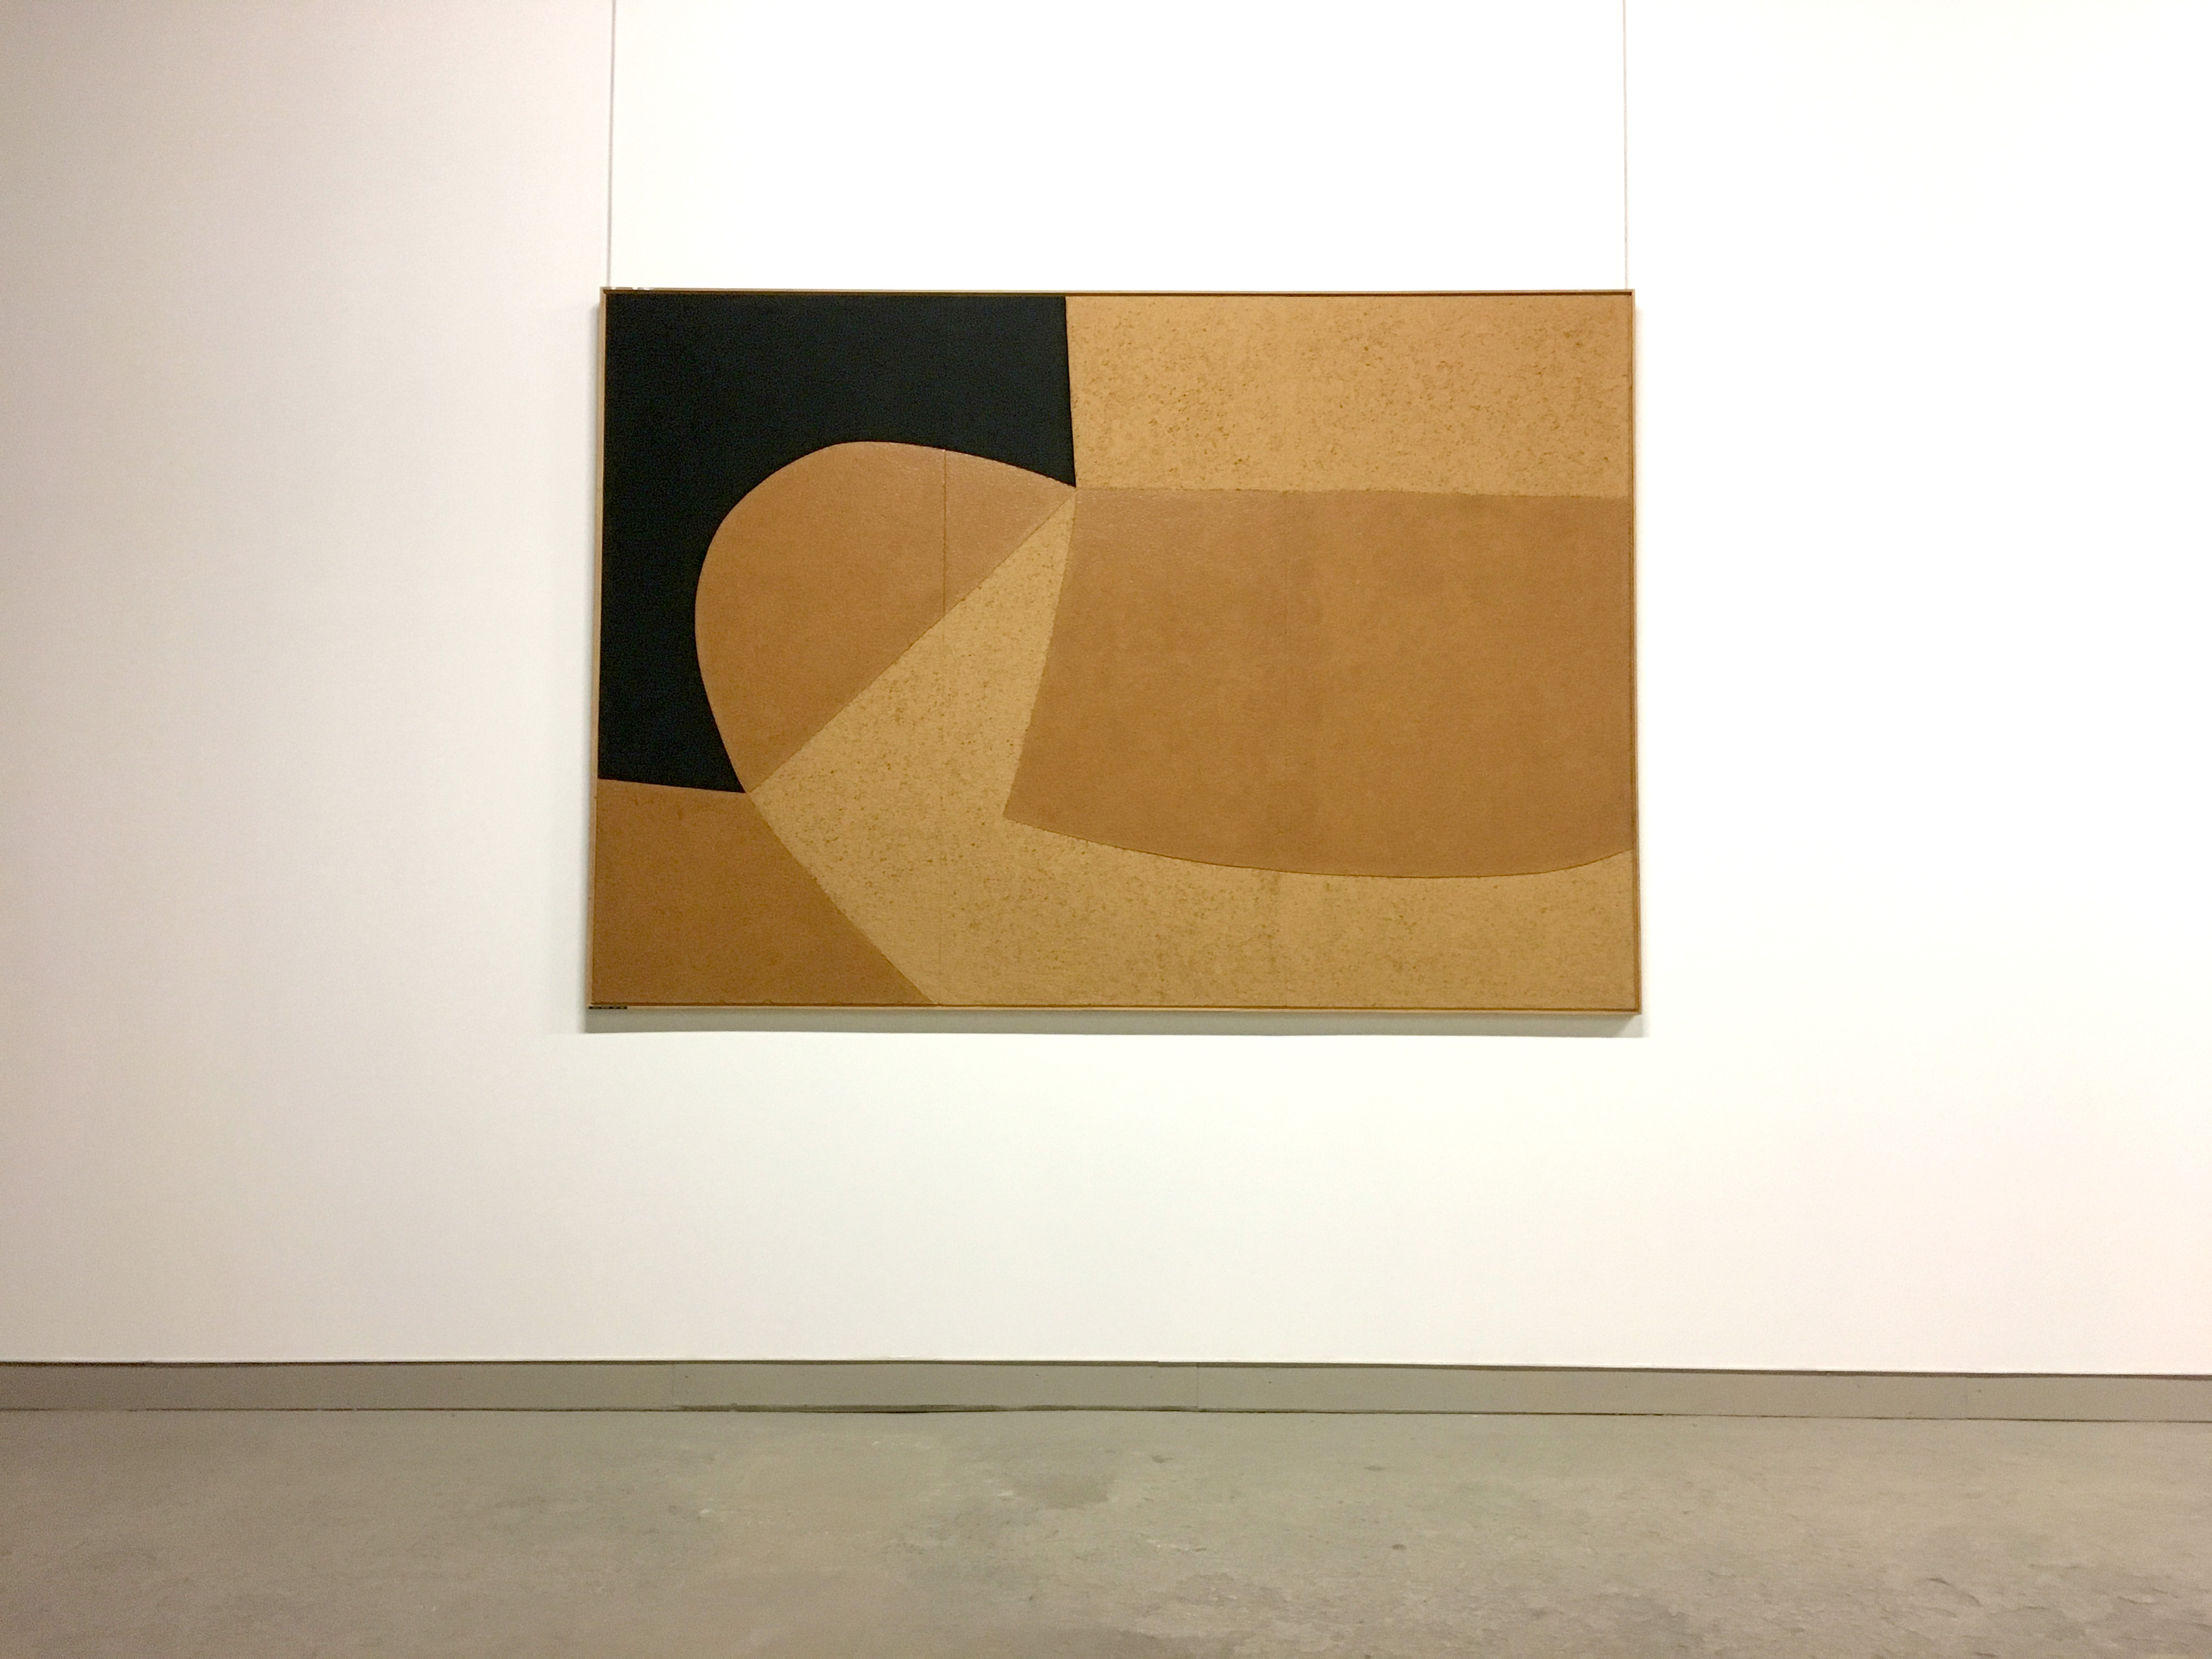 Alberto Burri black and cork coloured artwork